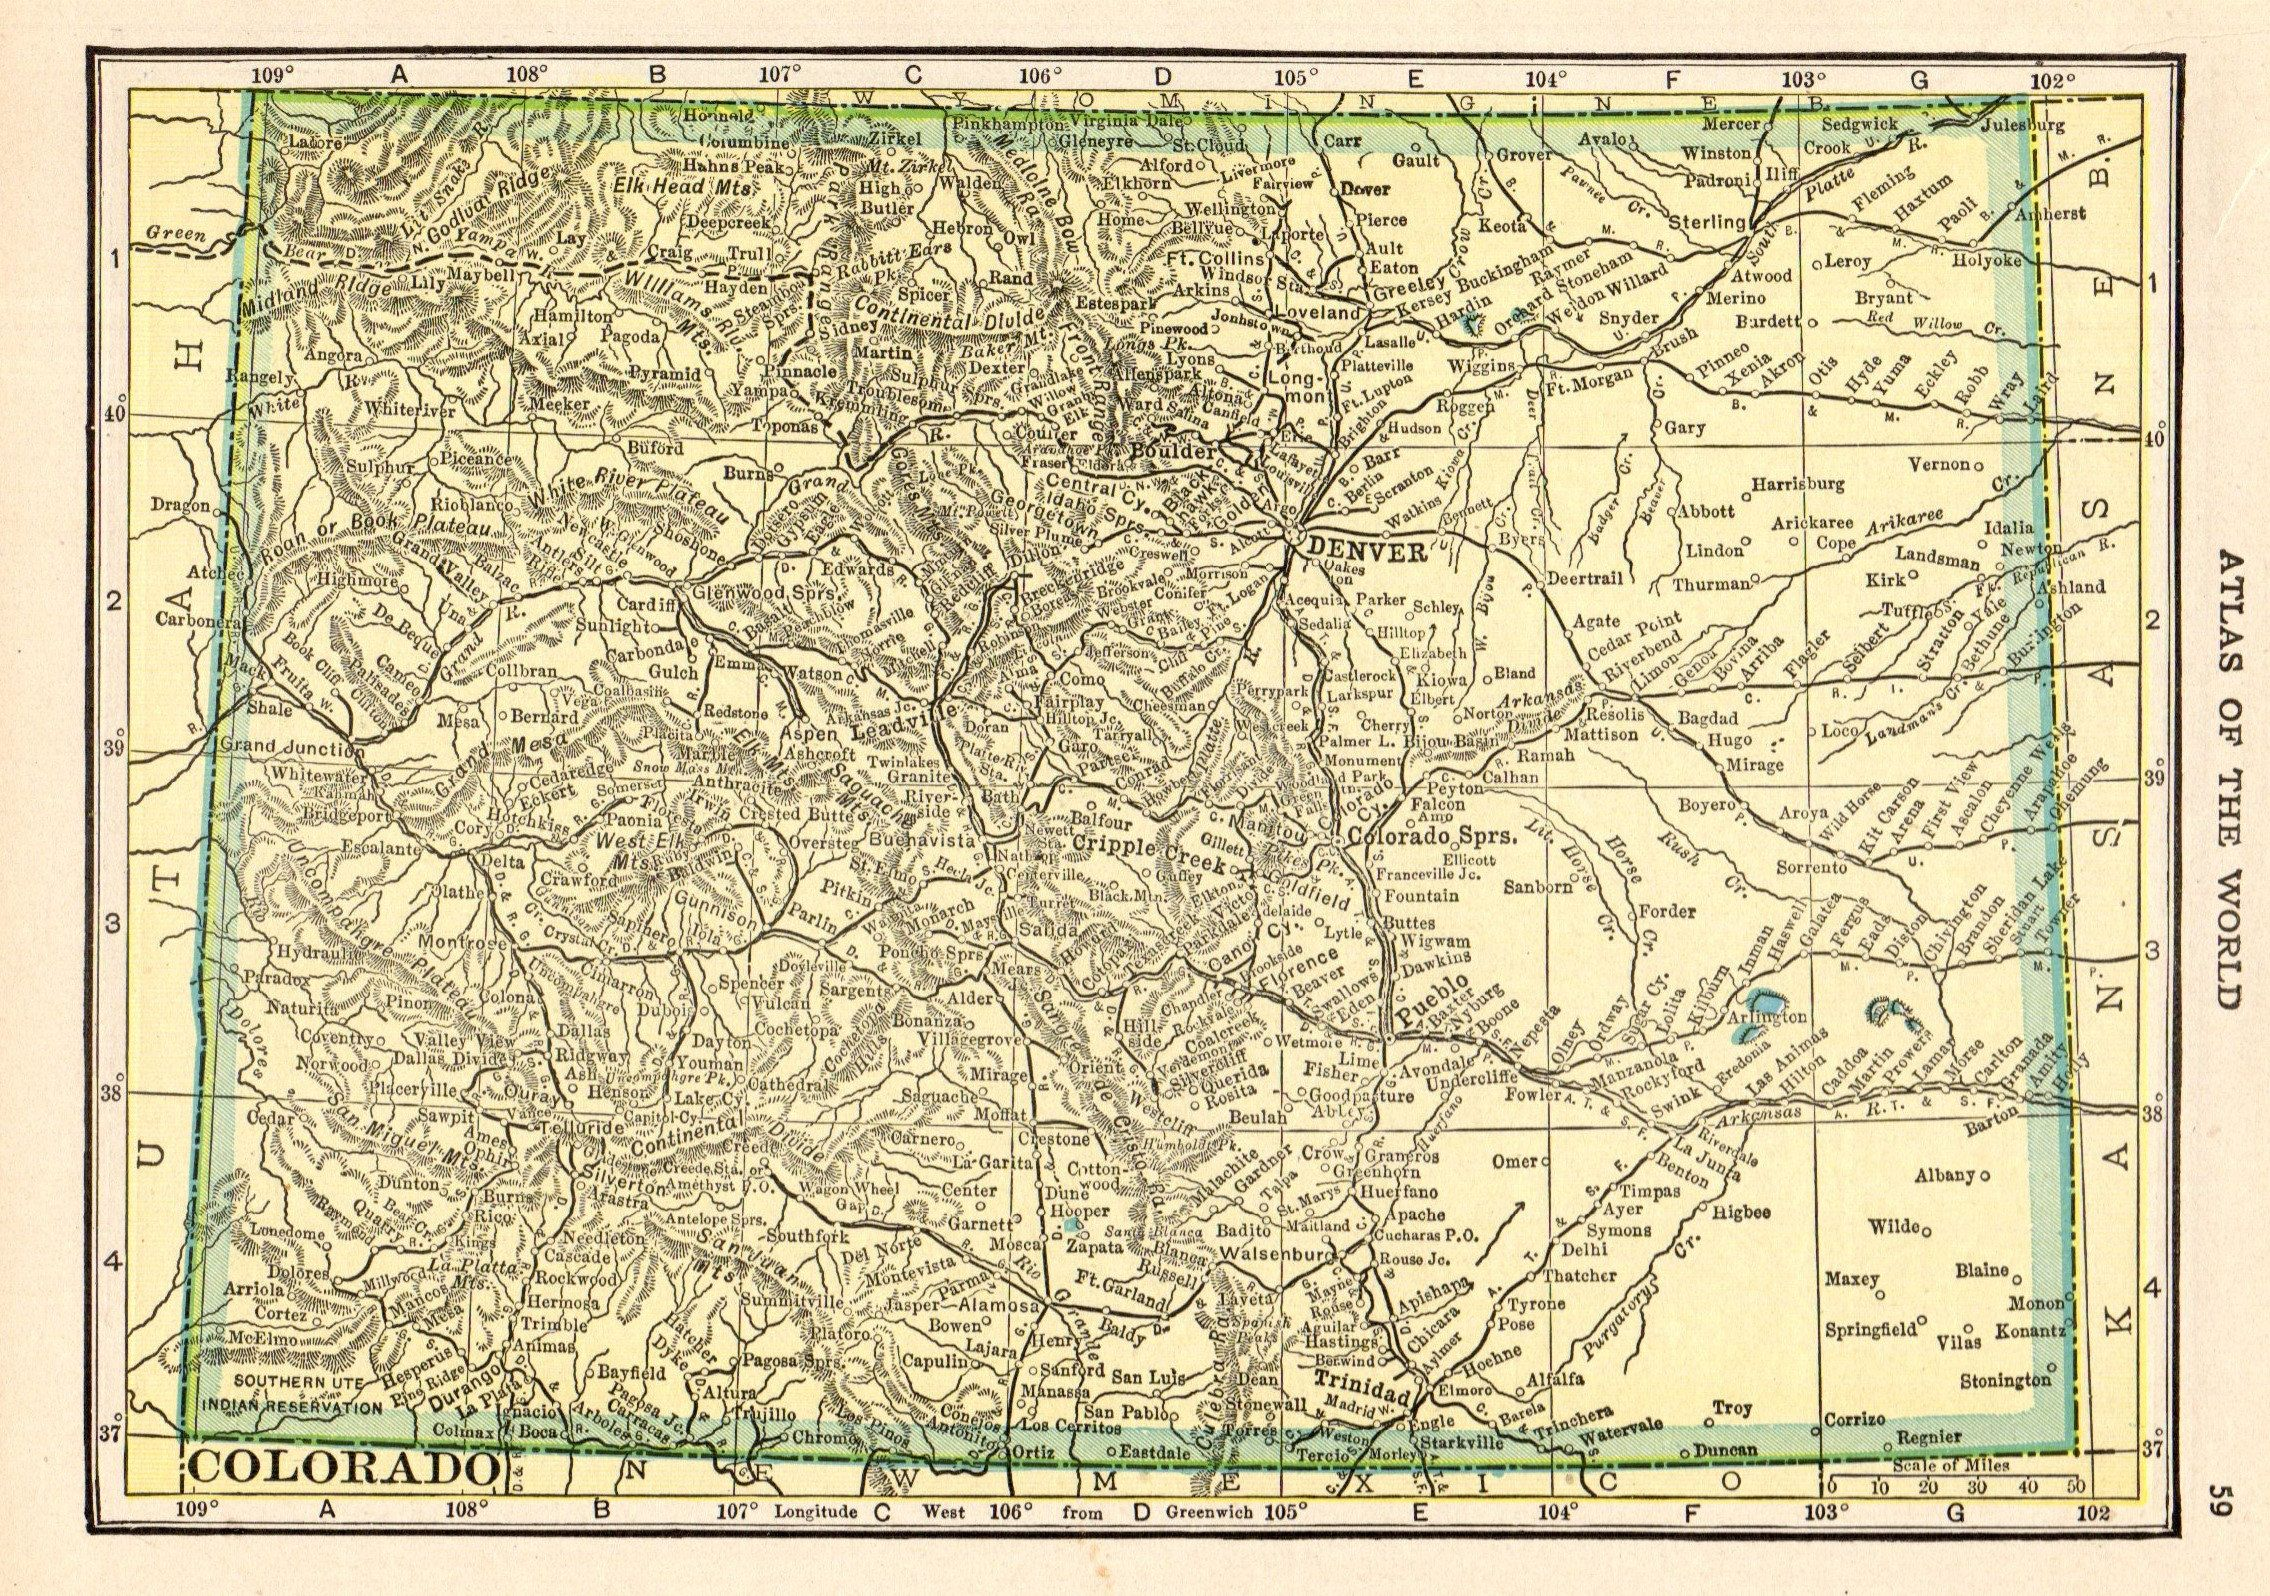 1909 Antique Colorado State Map Vintage Map Of Colorado Gallery Wall Art Decor Anniversary Gift For Birthday Wedding Haw 10122 Map Wall Art Decor Art Decor